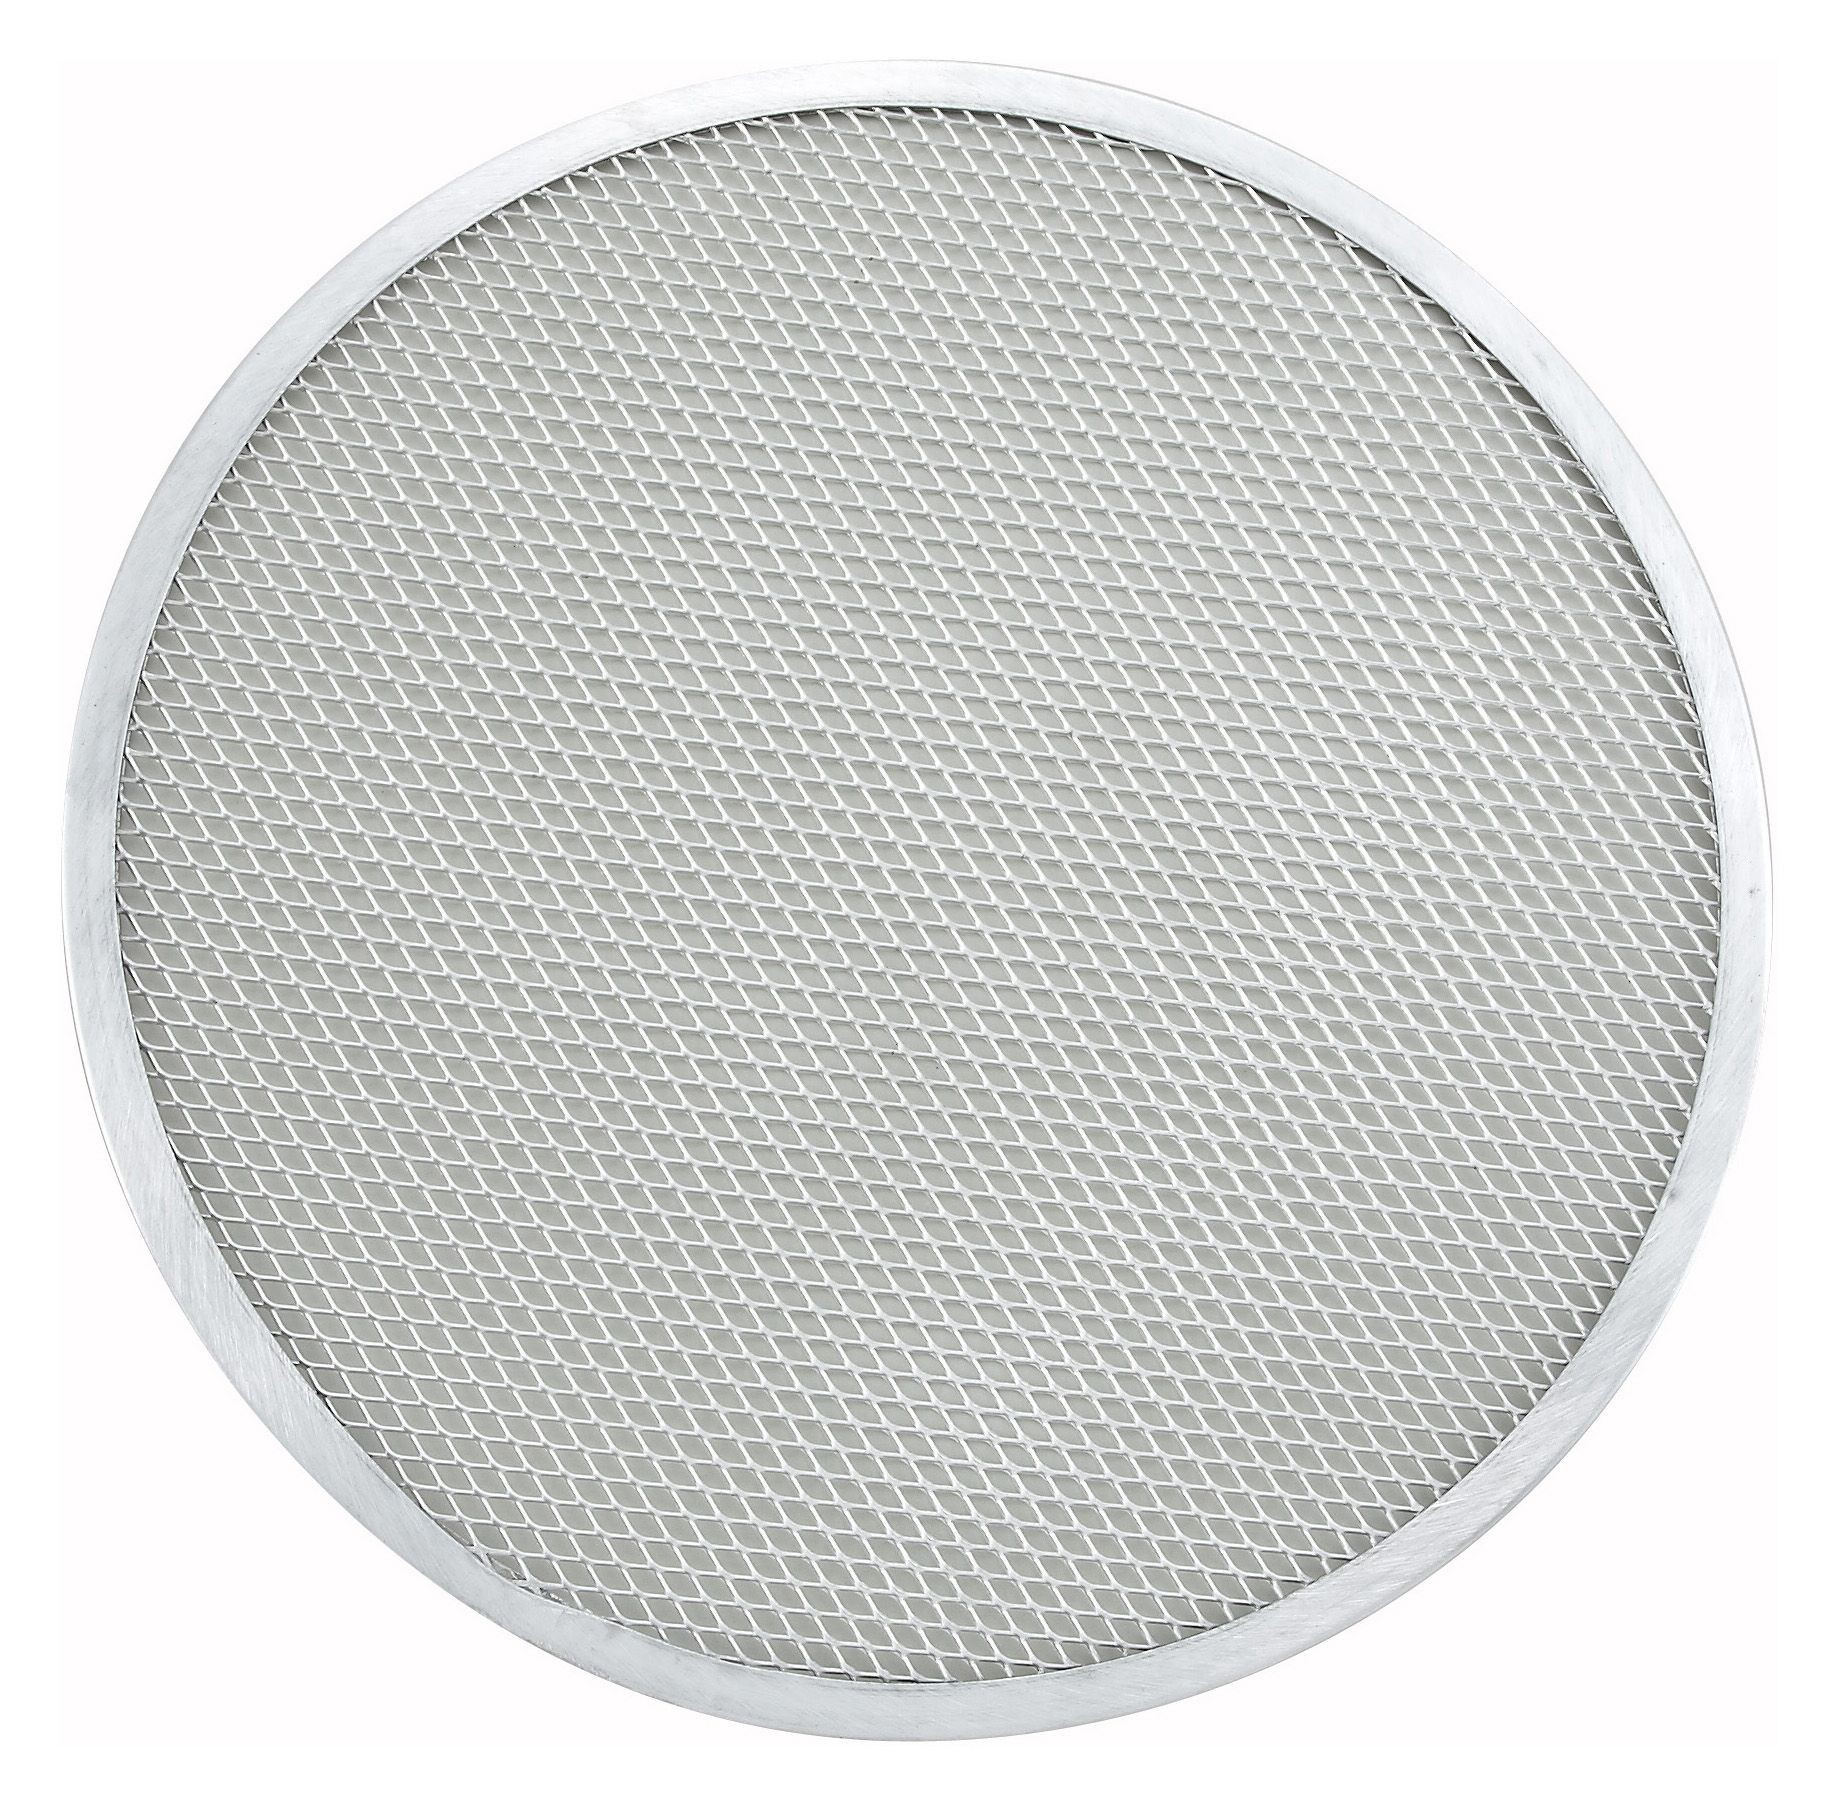 "Winco APZS-16 Seamless Aluminum Pizza Screen 16"" Dia."